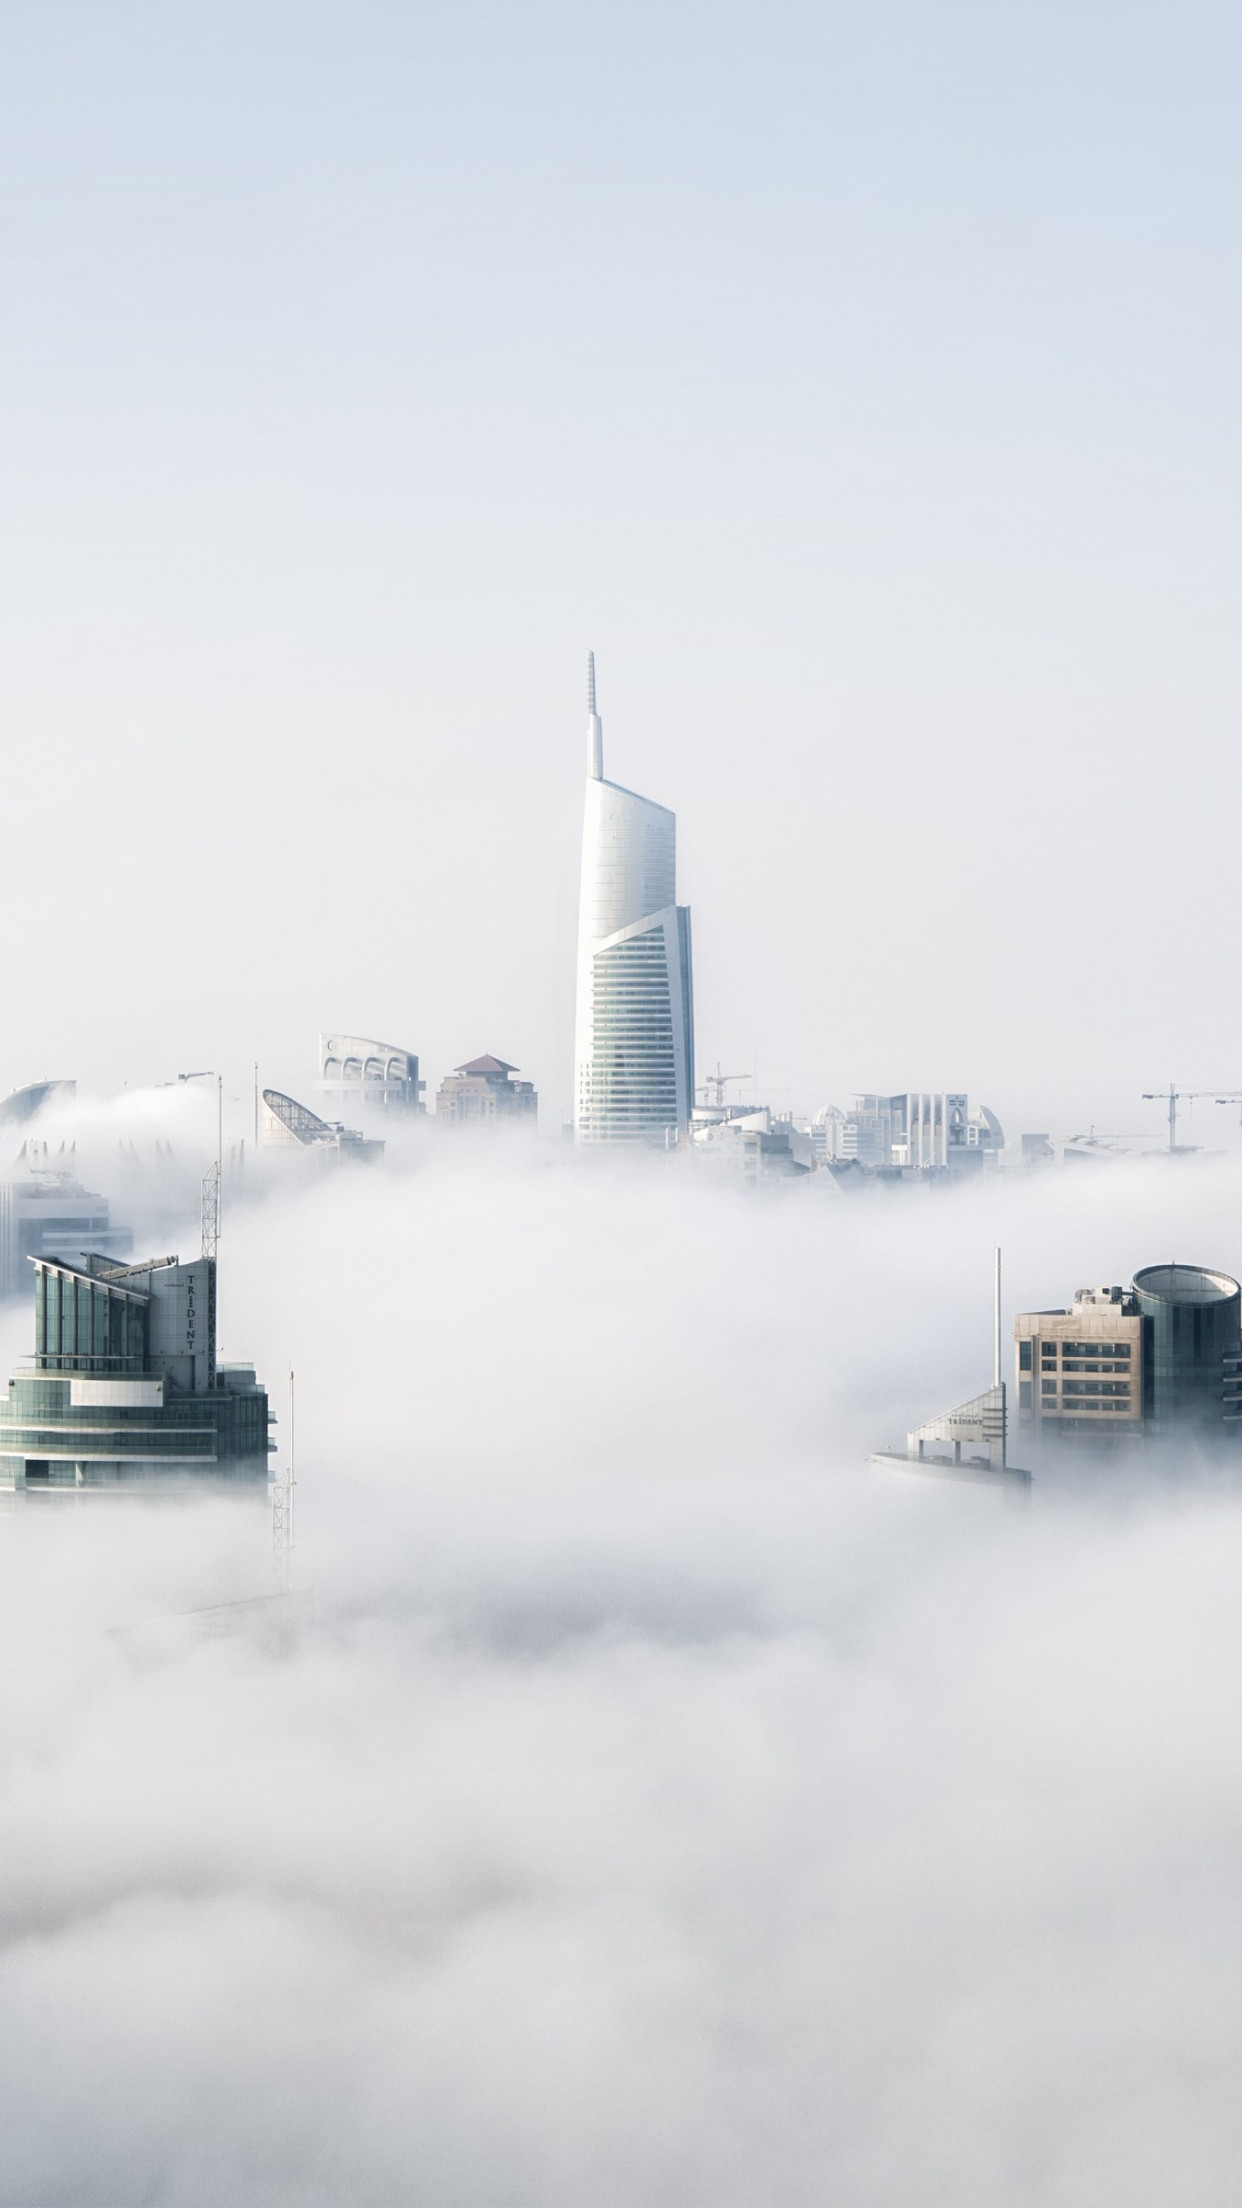 Fog is over Dubai wallpaper 1242x2208